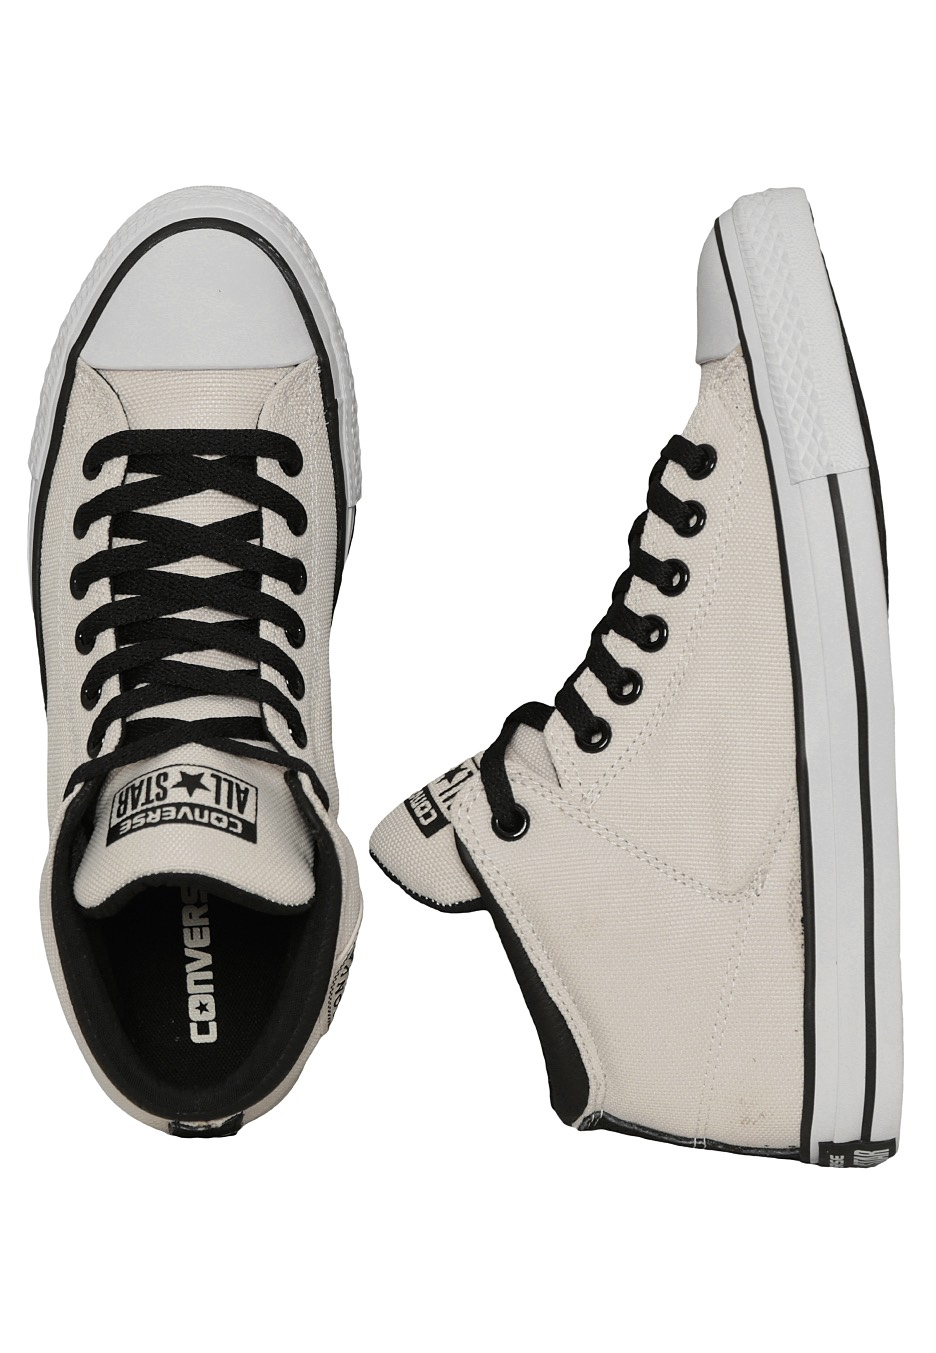 d3d31852184 Converse - Chuck Taylor All Star High Street Hi Parchment Black White -  Shoes - Impericon.com Worldwide